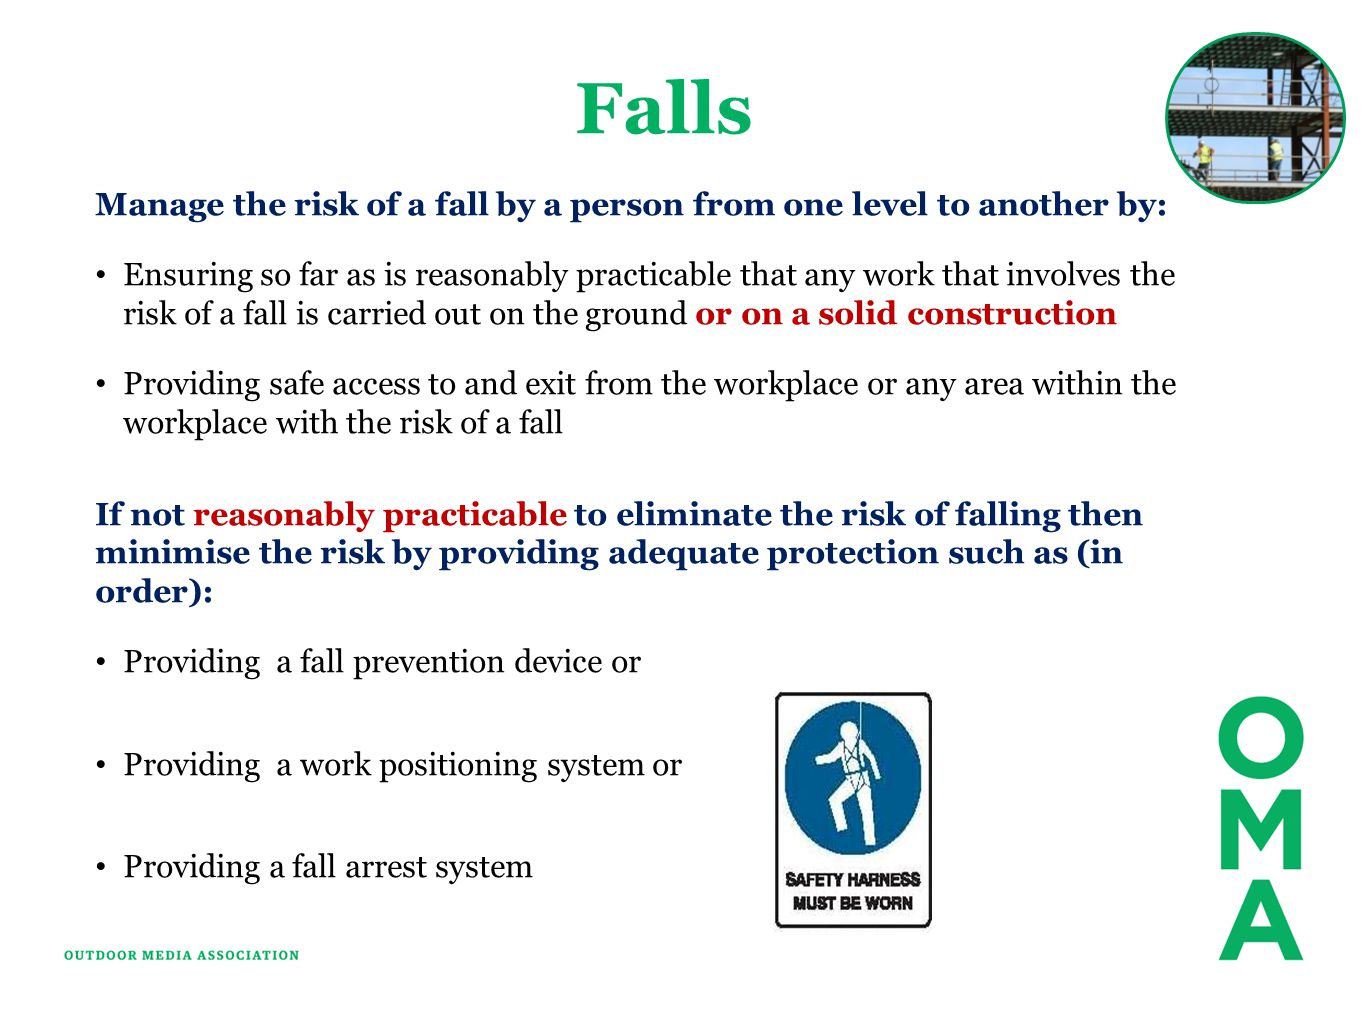 Falls Manage the risk of a fall by a person from one level to another by: Ensuring so far as is reasonably practicable that any work that involves the risk of a fall is carried out on the ground or on a solid construction Providing safe access to and exit from the workplace or any area within the workplace with the risk of a fall If not reasonably practicable to eliminate the risk of falling then minimise the risk by providing adequate protection such as (in order): Providing a fall prevention device or Providing a work positioning system or Providing a fall arrest system